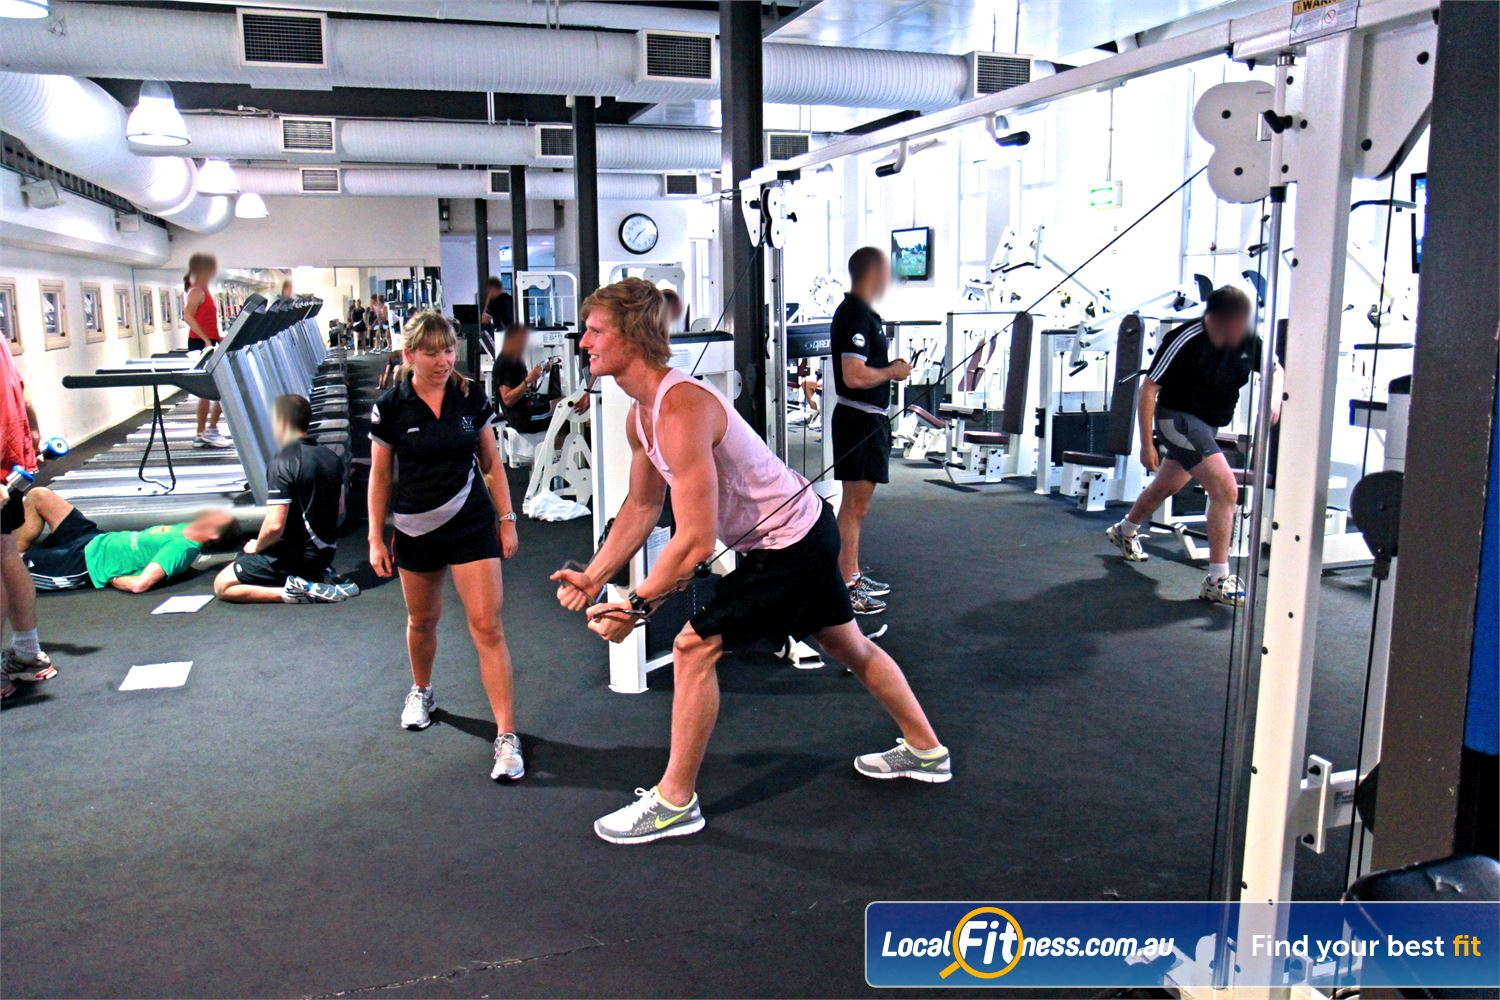 Goodlife Health Clubs Martin Place Near Alexandria Mc The spacious Goodlife Sydney gym is located in the heart of corporate Sydney.